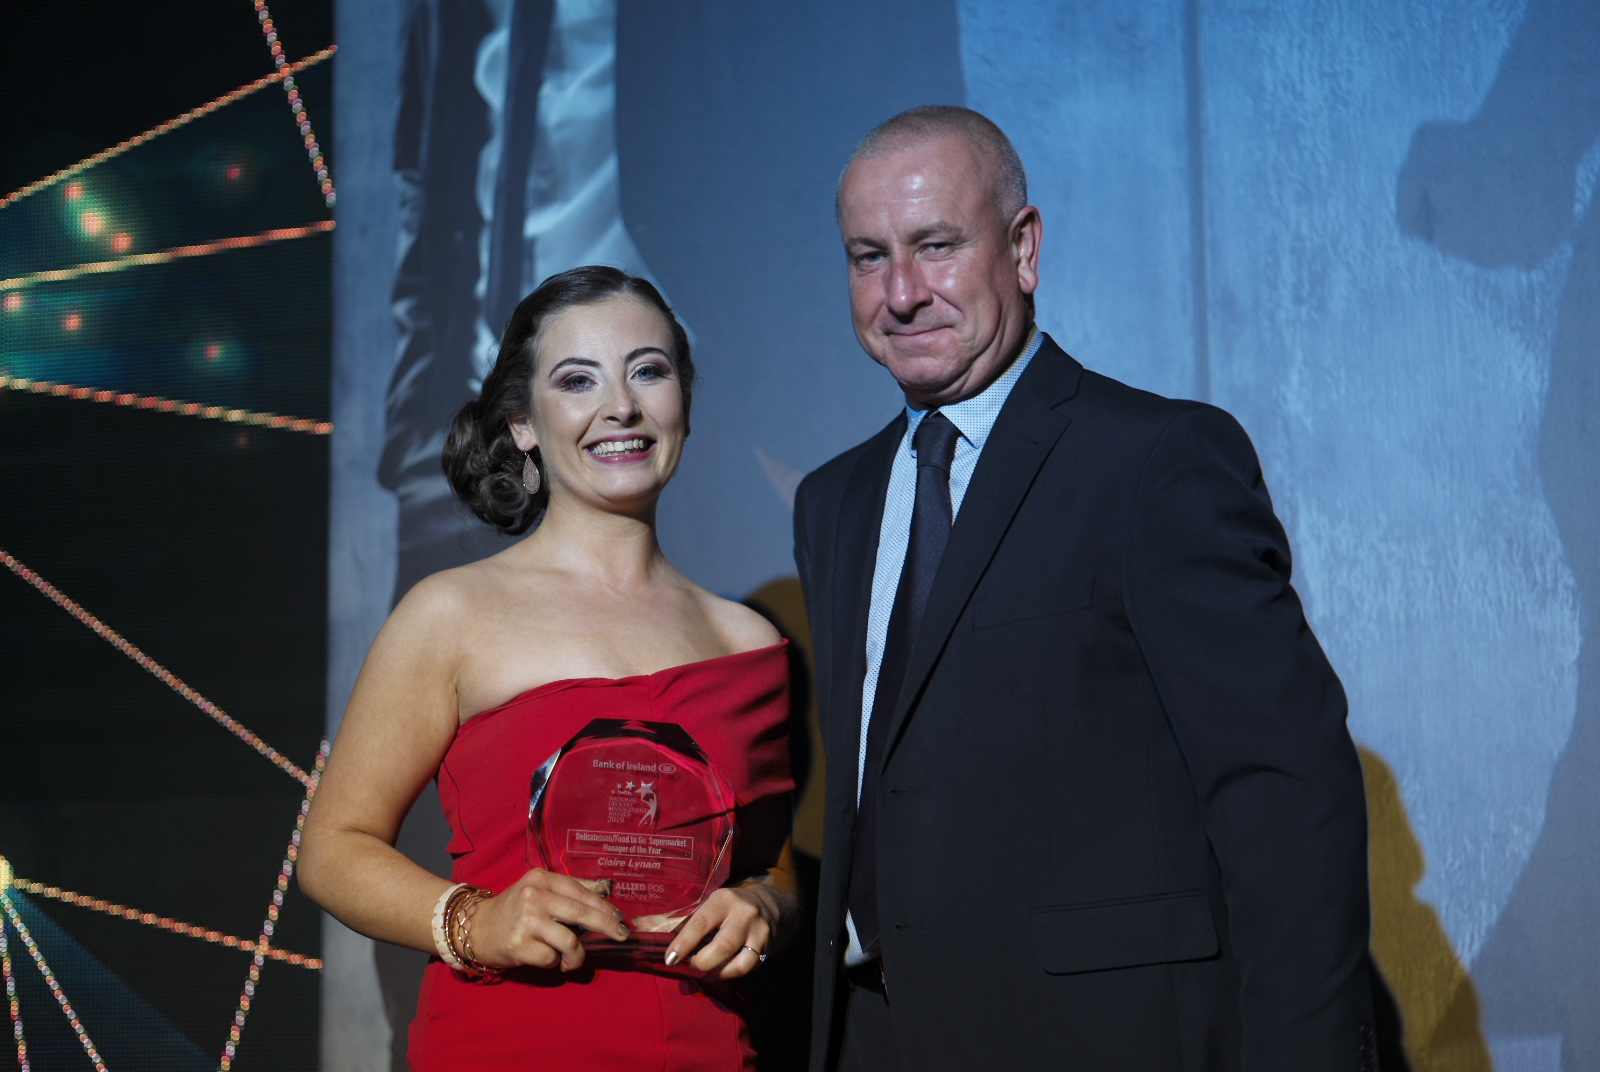 Supermarket Deli/Food-to-Go Manager of the Year Claire Lynam of SuperValu Castletroy